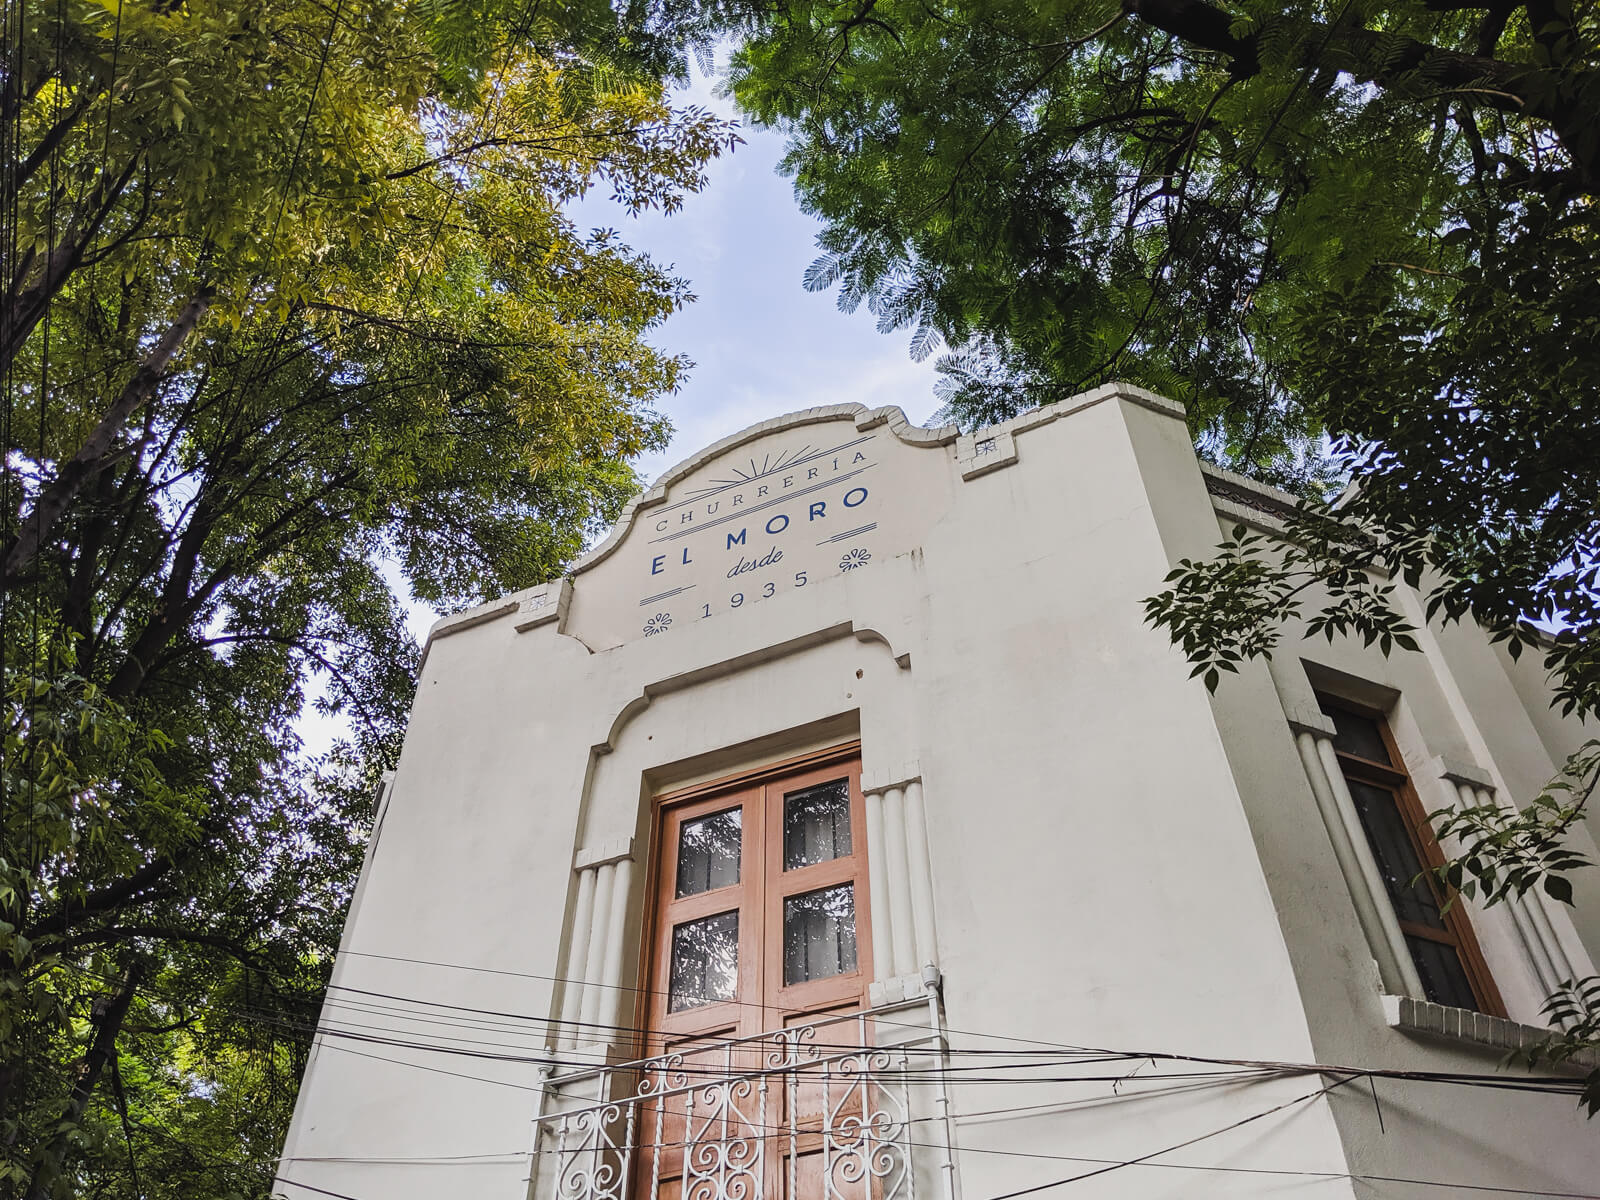 An art deco building stands on a street corner below a canopy of trees in Mexico City